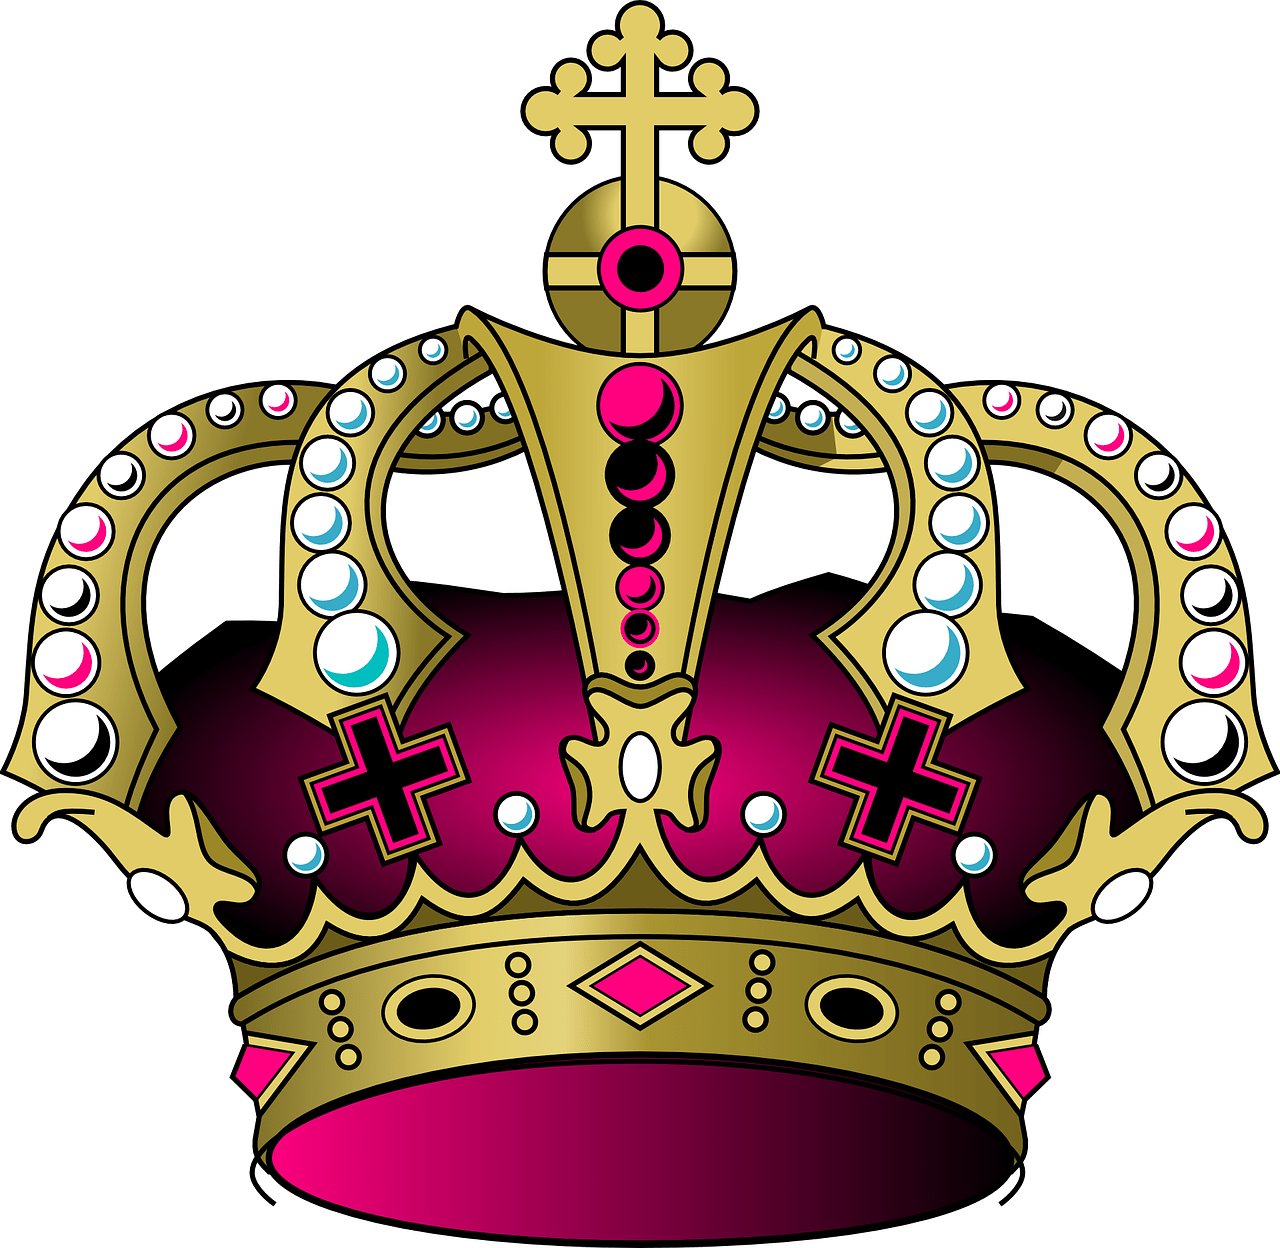 Crown clipart for fathers day king png library The Righteous King: A Parable - The Other Side Of Darkness png library